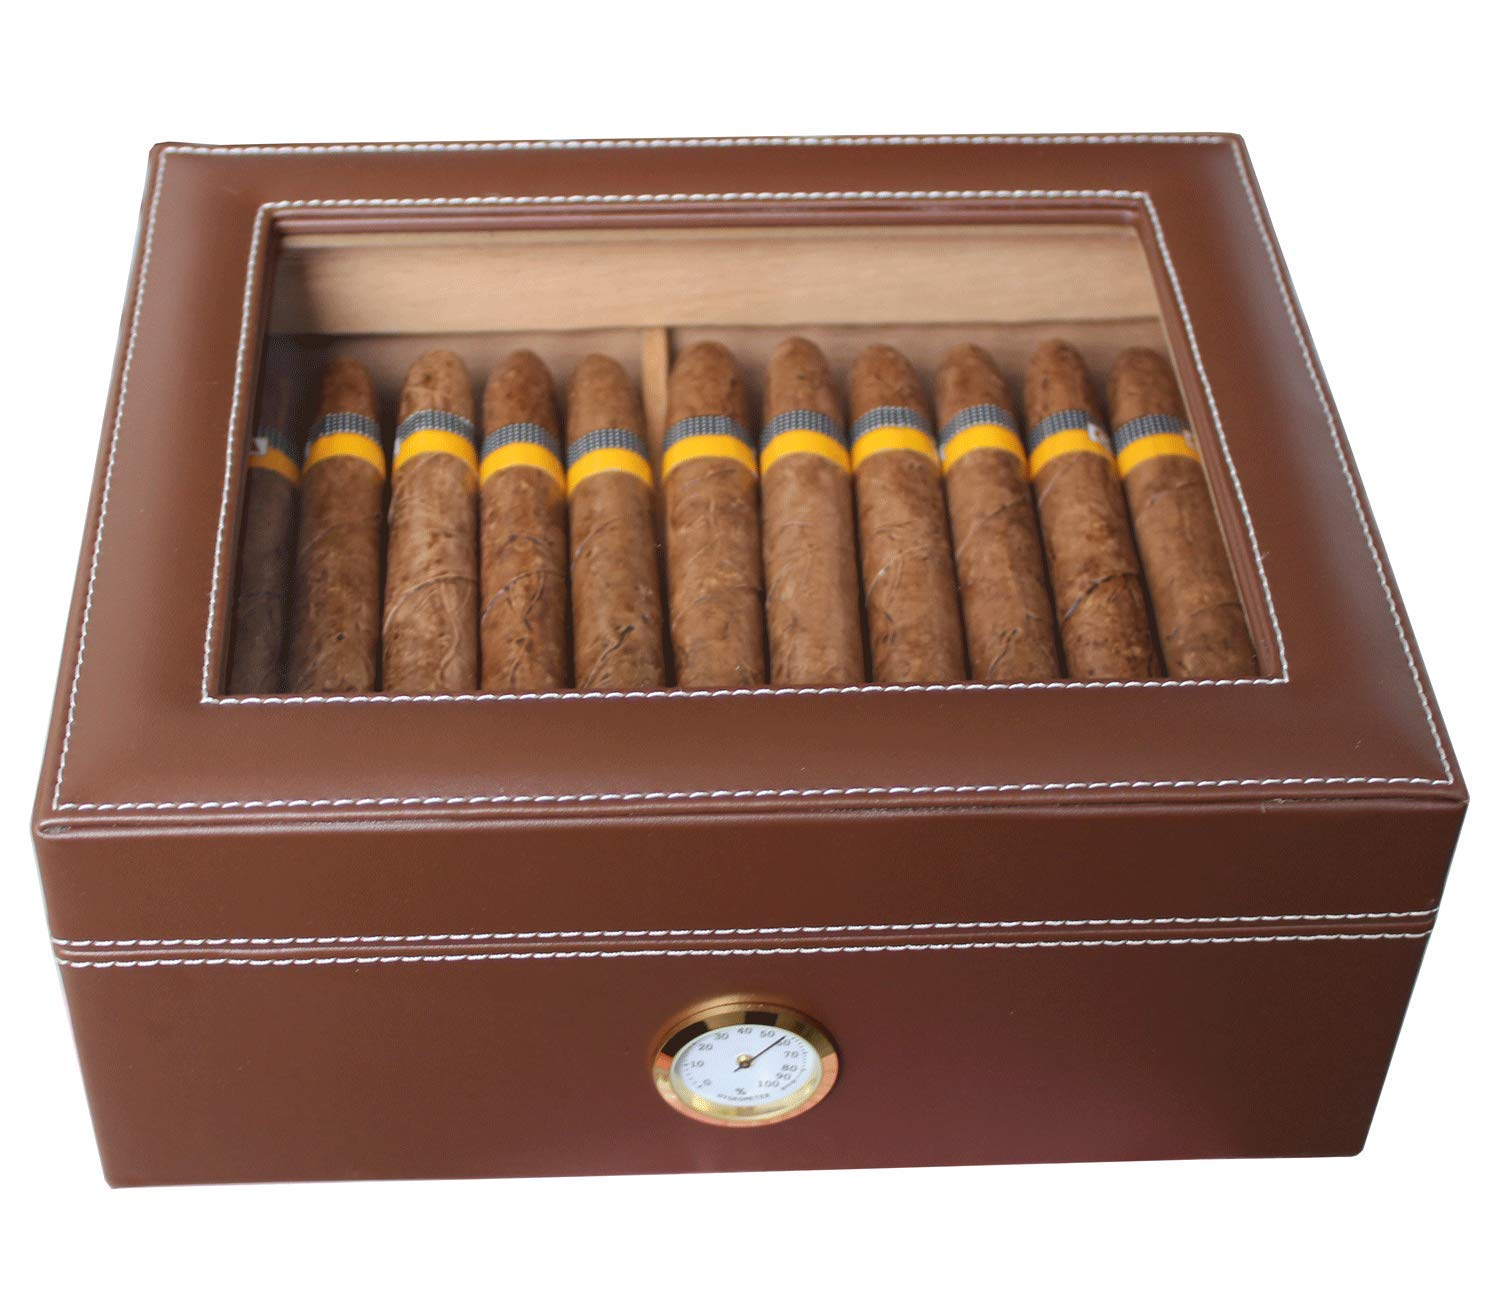 AMANCY Quality Brown Leather Handmade 25-50 Cigar Humidor ,Desktop Cedar Wood Lined Cigar Storage box with Glasstop